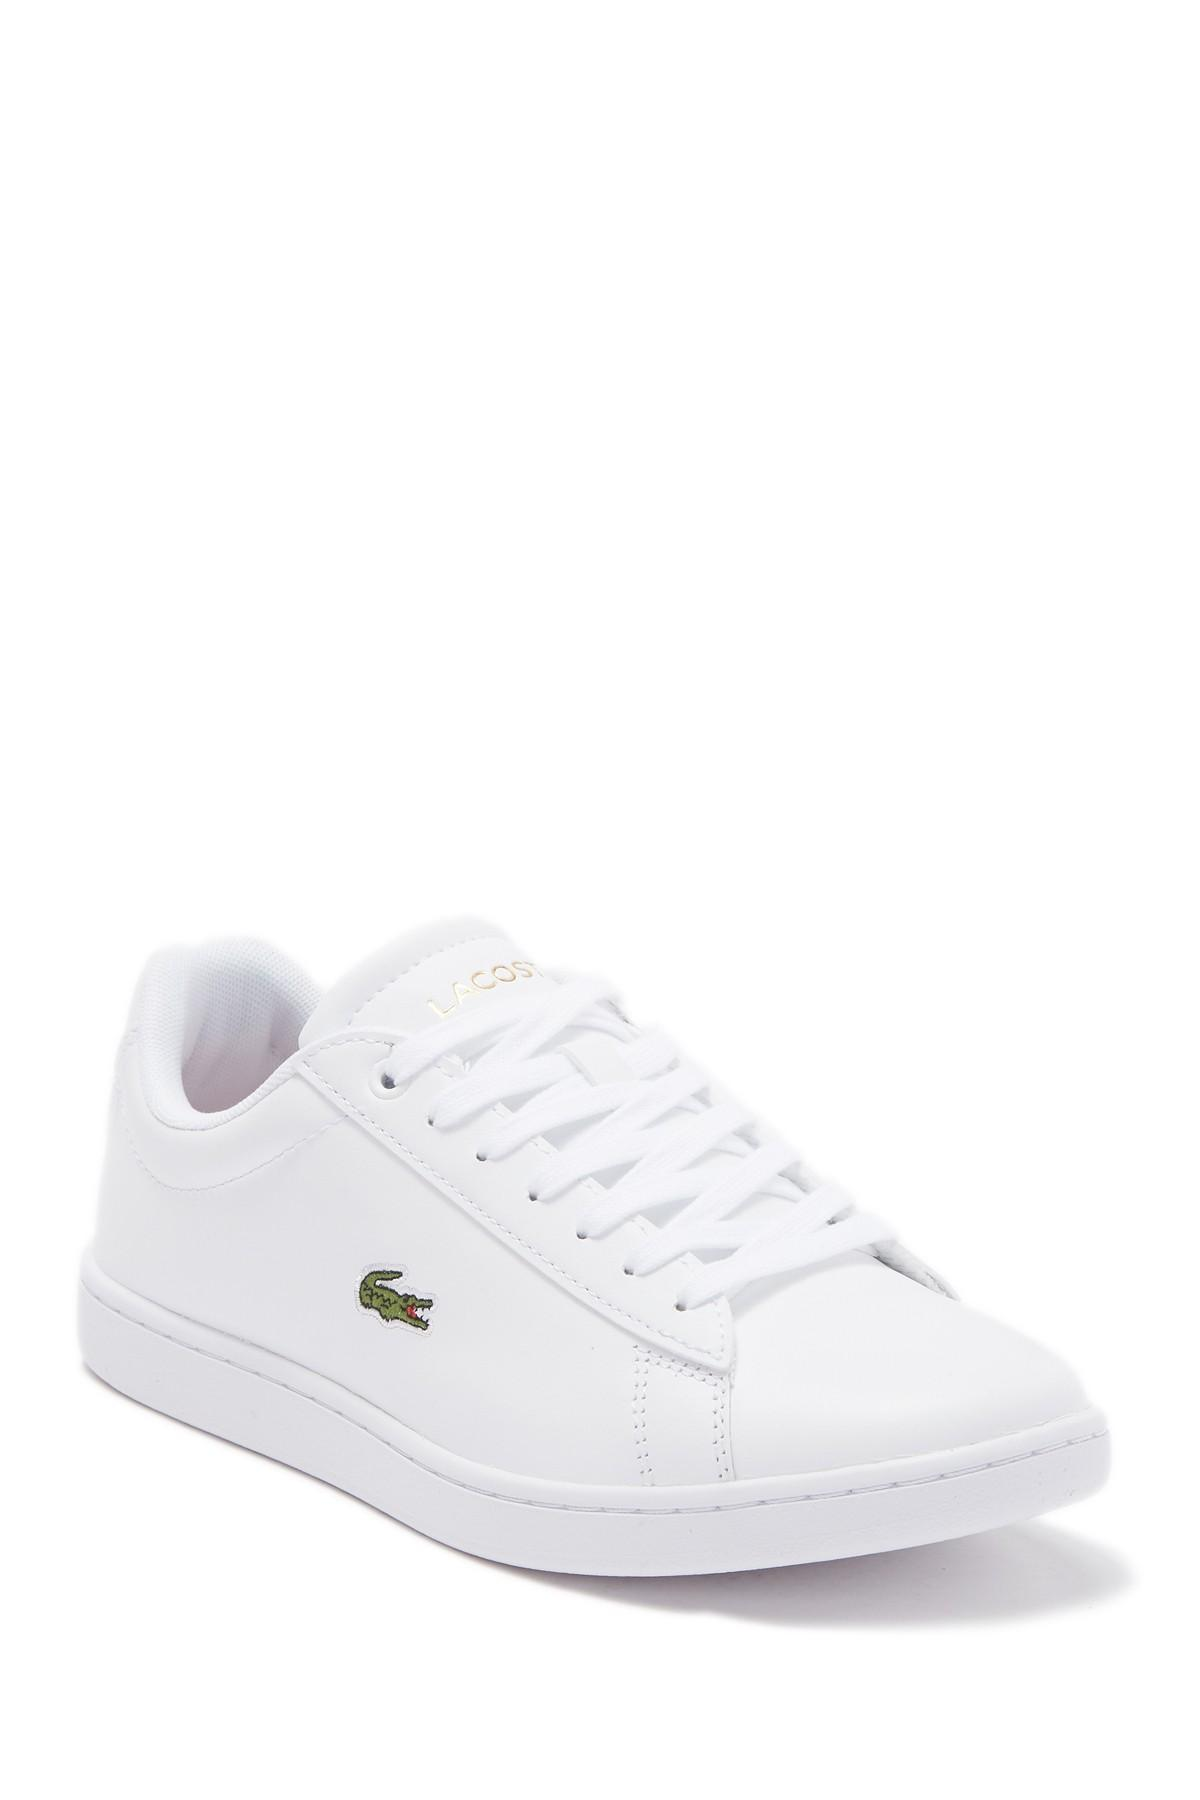 Women/'s Lacoste Sideline Leather Upper Cushioned Casual Trainers in White